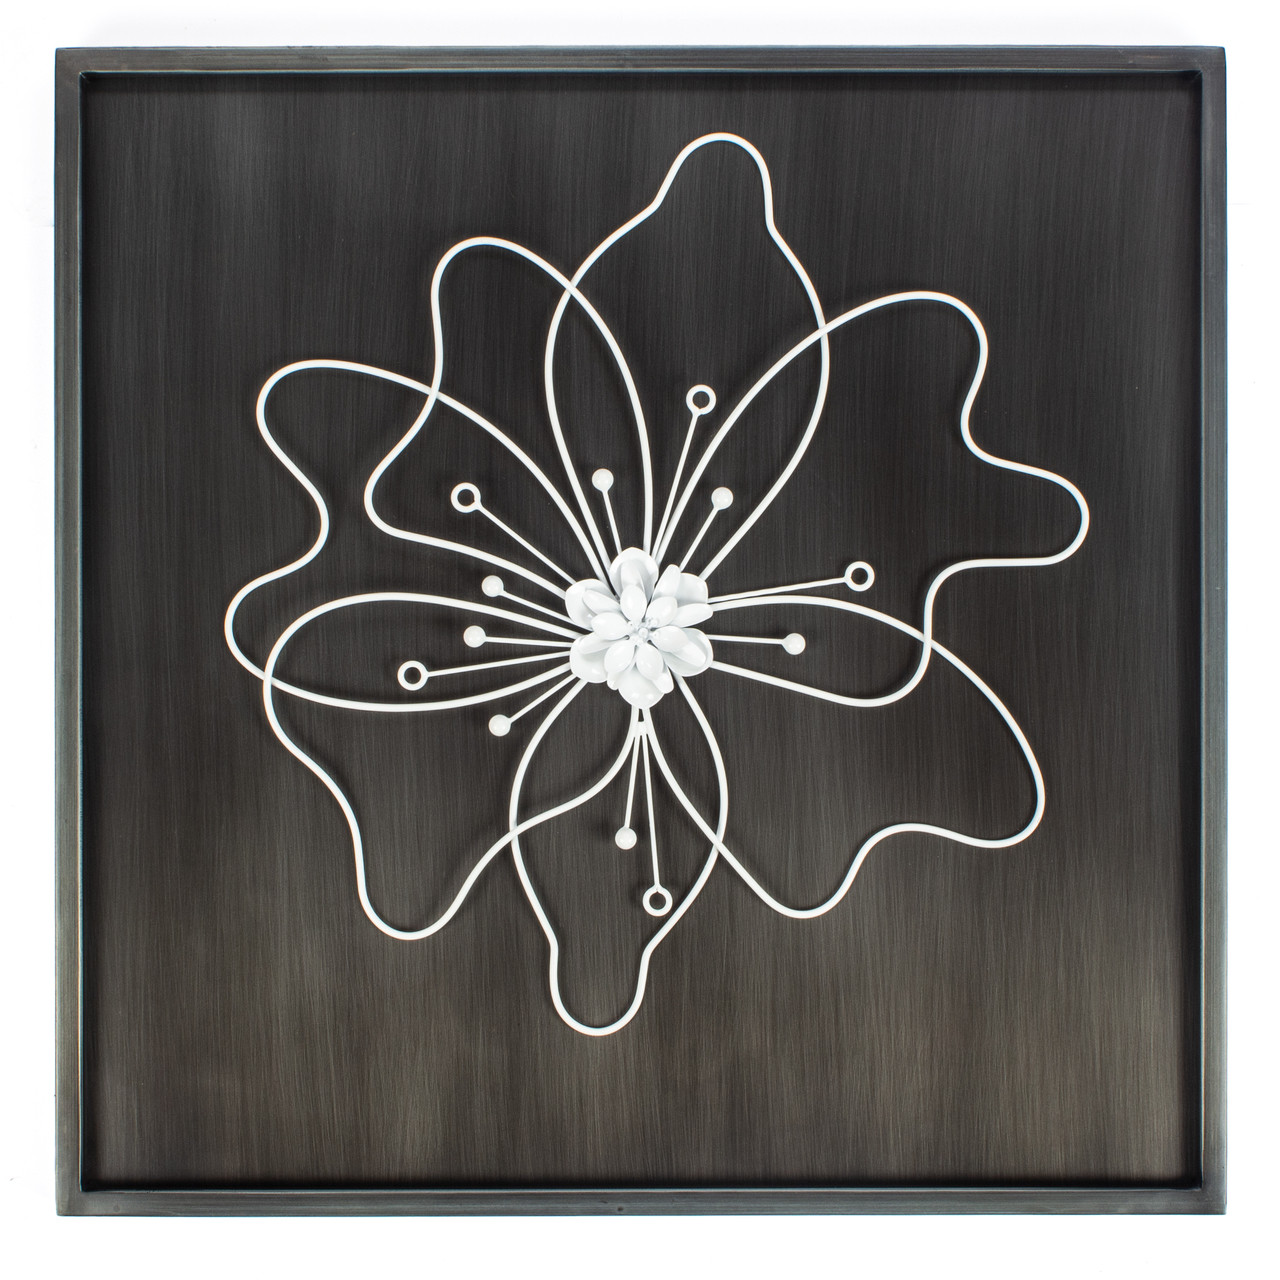 8a0d631439 wall art home floral flower décor mounted wall-mounted square gold framed  big hallway decorative